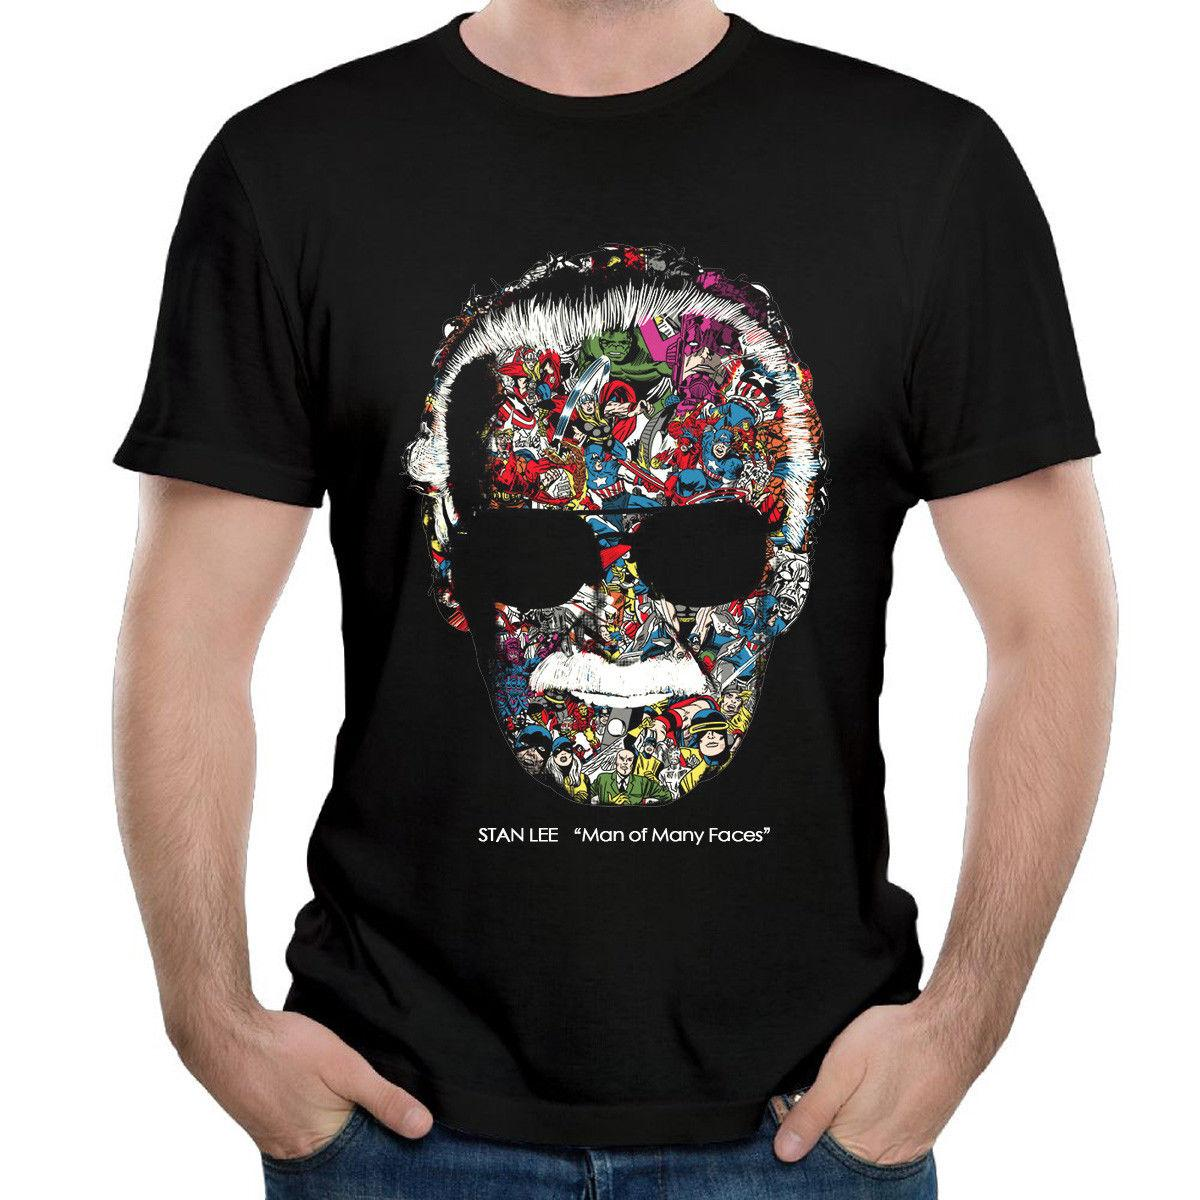 0c0978e6 Stan Lee Man Of Many Faces Tshirt Poster Mens Tshirt Black Youth Fashion  Crazy T Shirts Online Cool Looking T Shirts From Happytshirt53, $11.58|  DHgate.Com